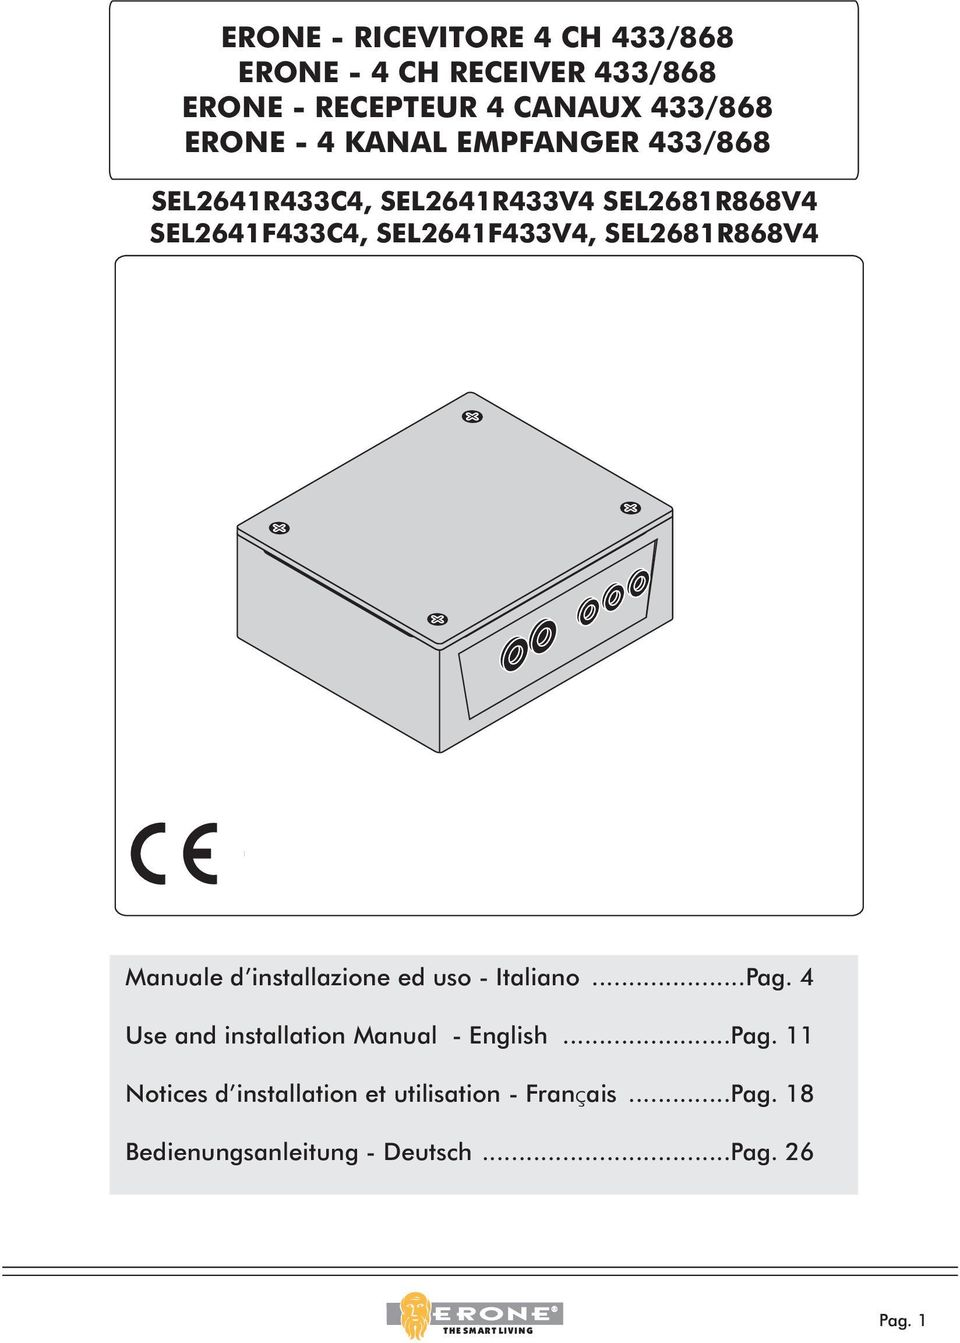 SEL2681R868V4 Manuale d installazione ed uso - Italiano...Pag. 4 Use and installation Manual - English.